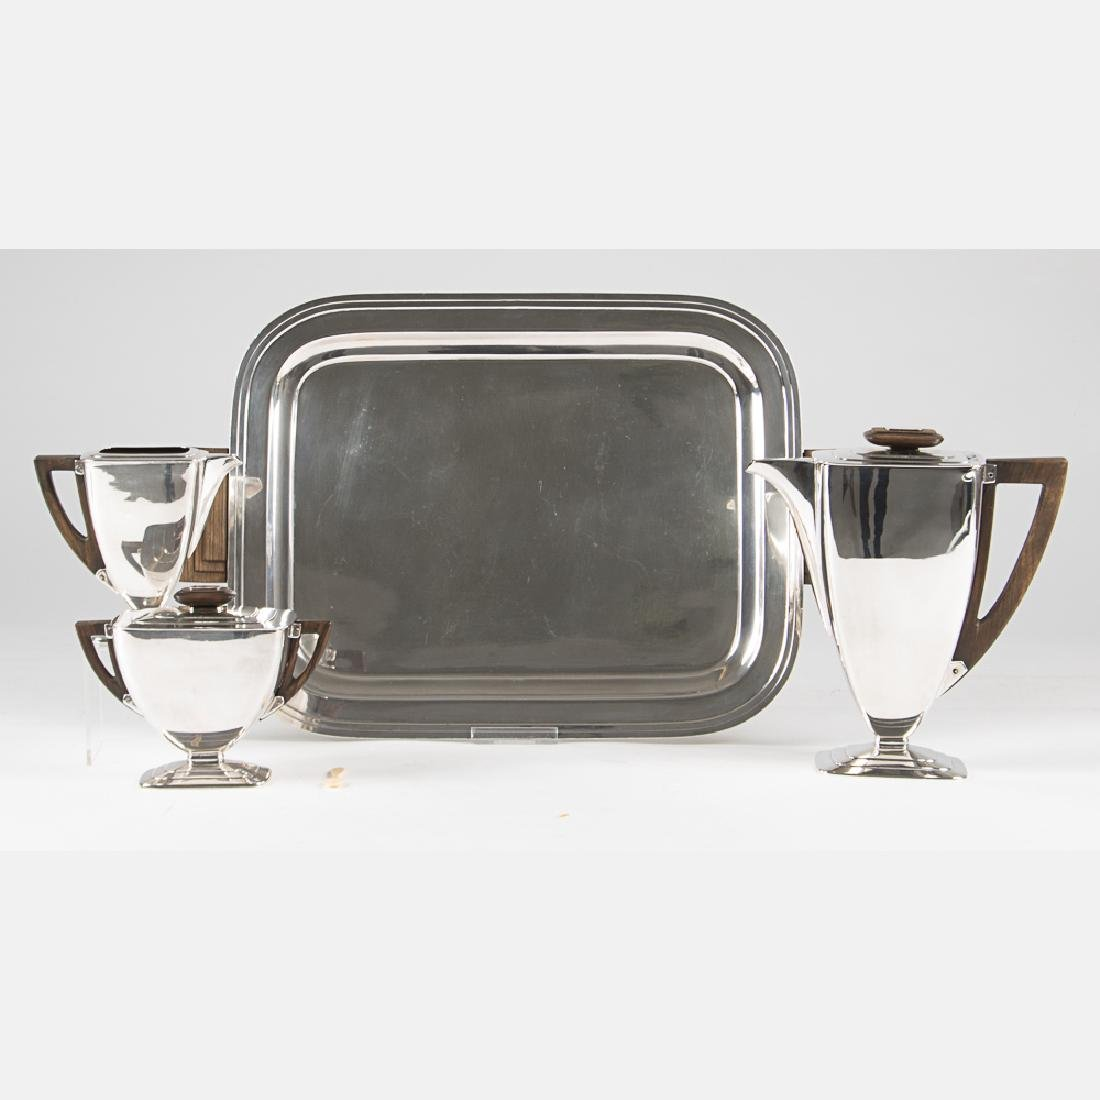 An International Silver Plated French Deco Style Coffee